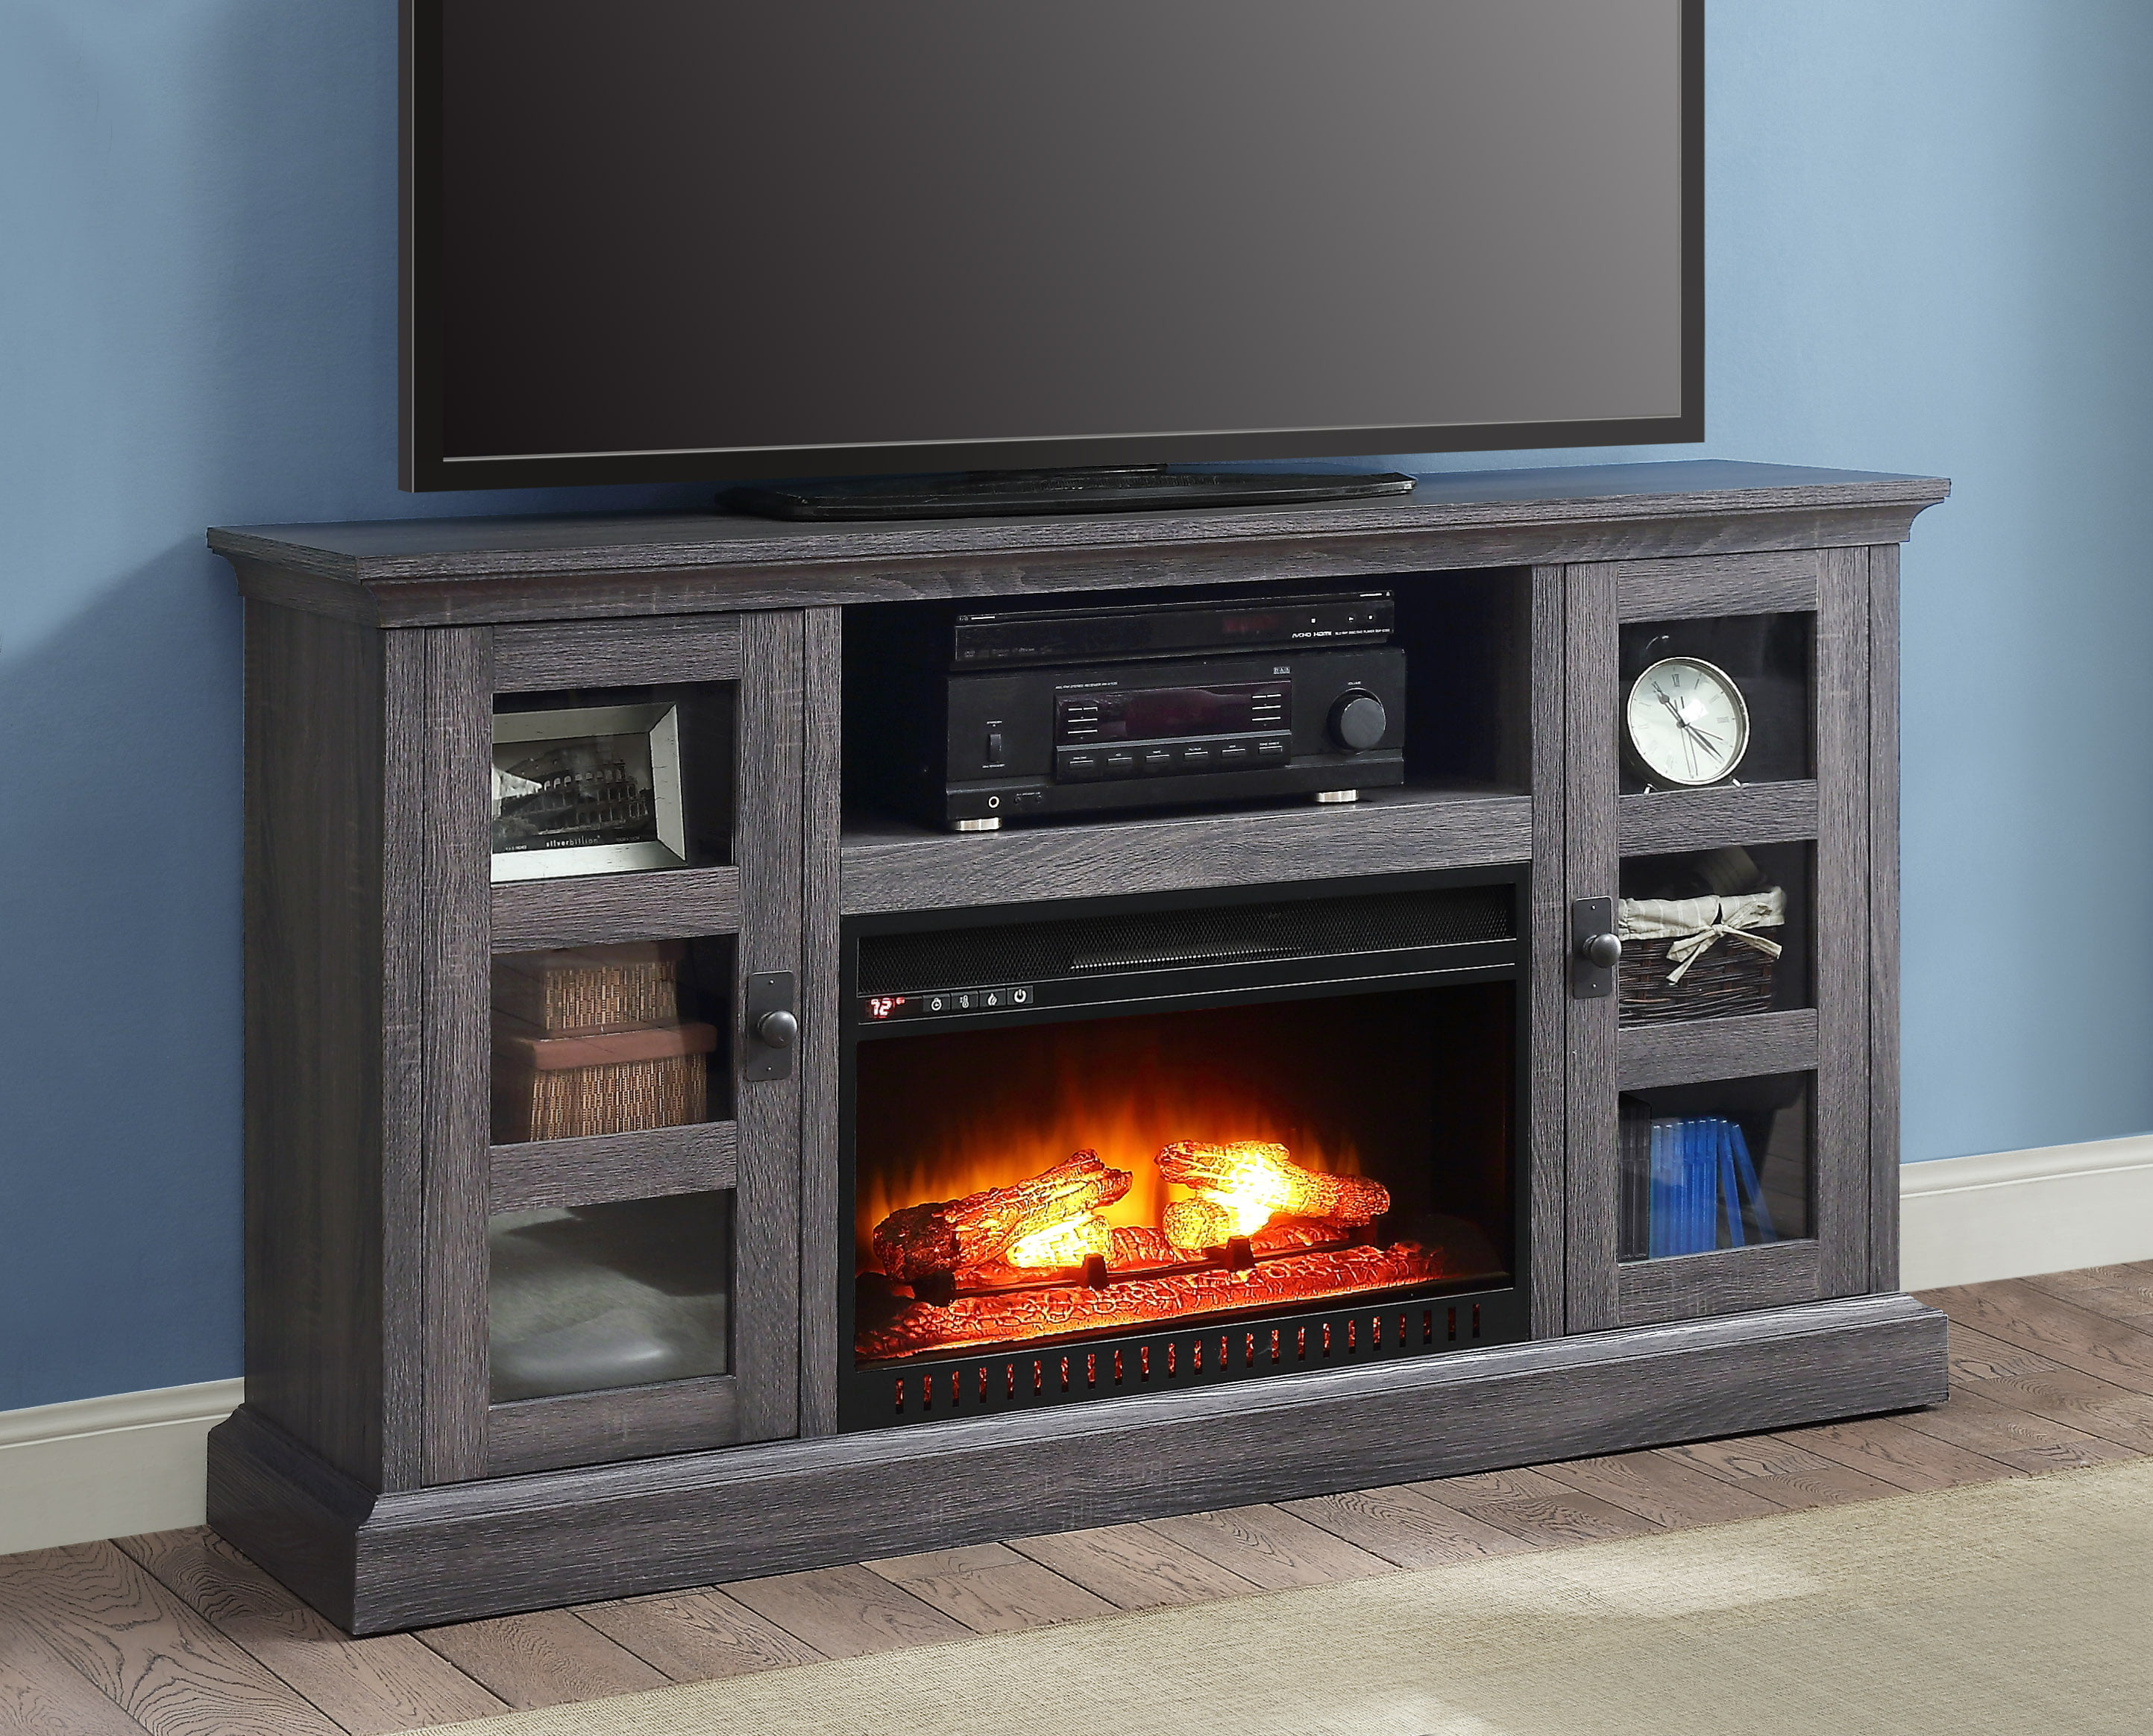 fireplace ebay to up for dark itm console tvs is whalen image loading media cherry